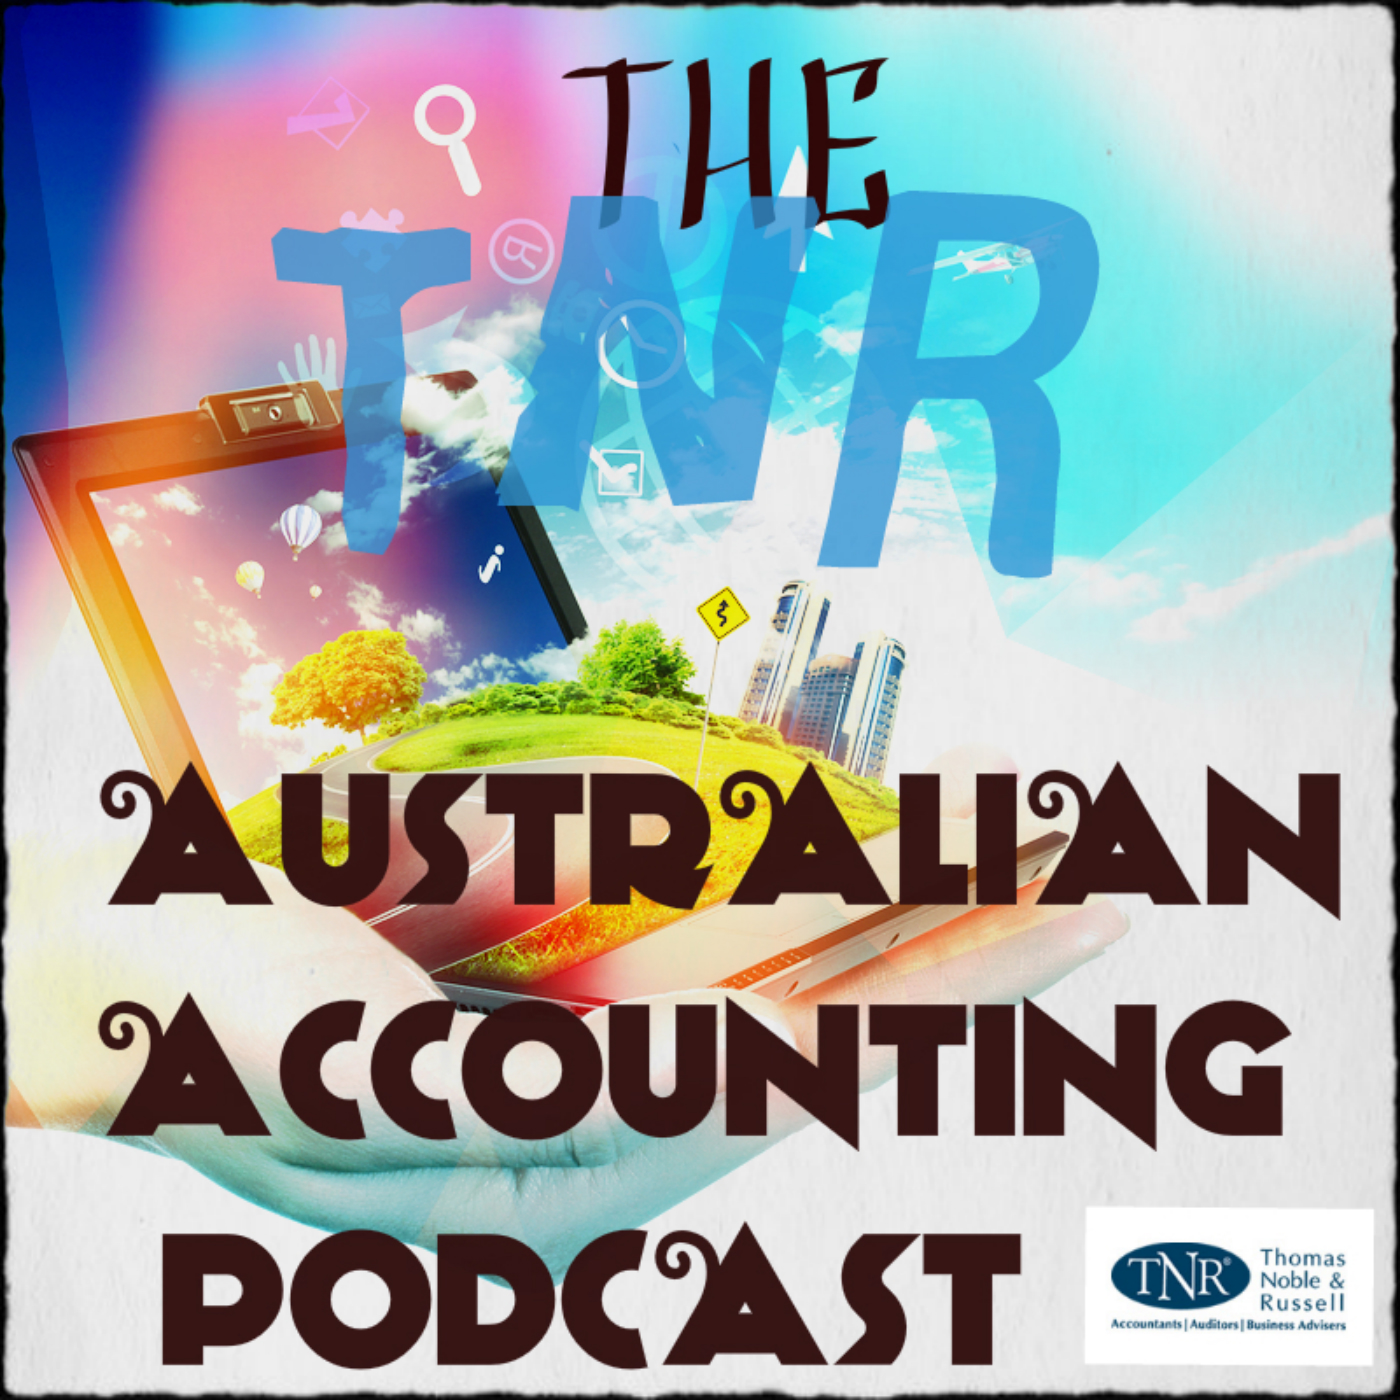 The TNR Australian Accounting Podcast